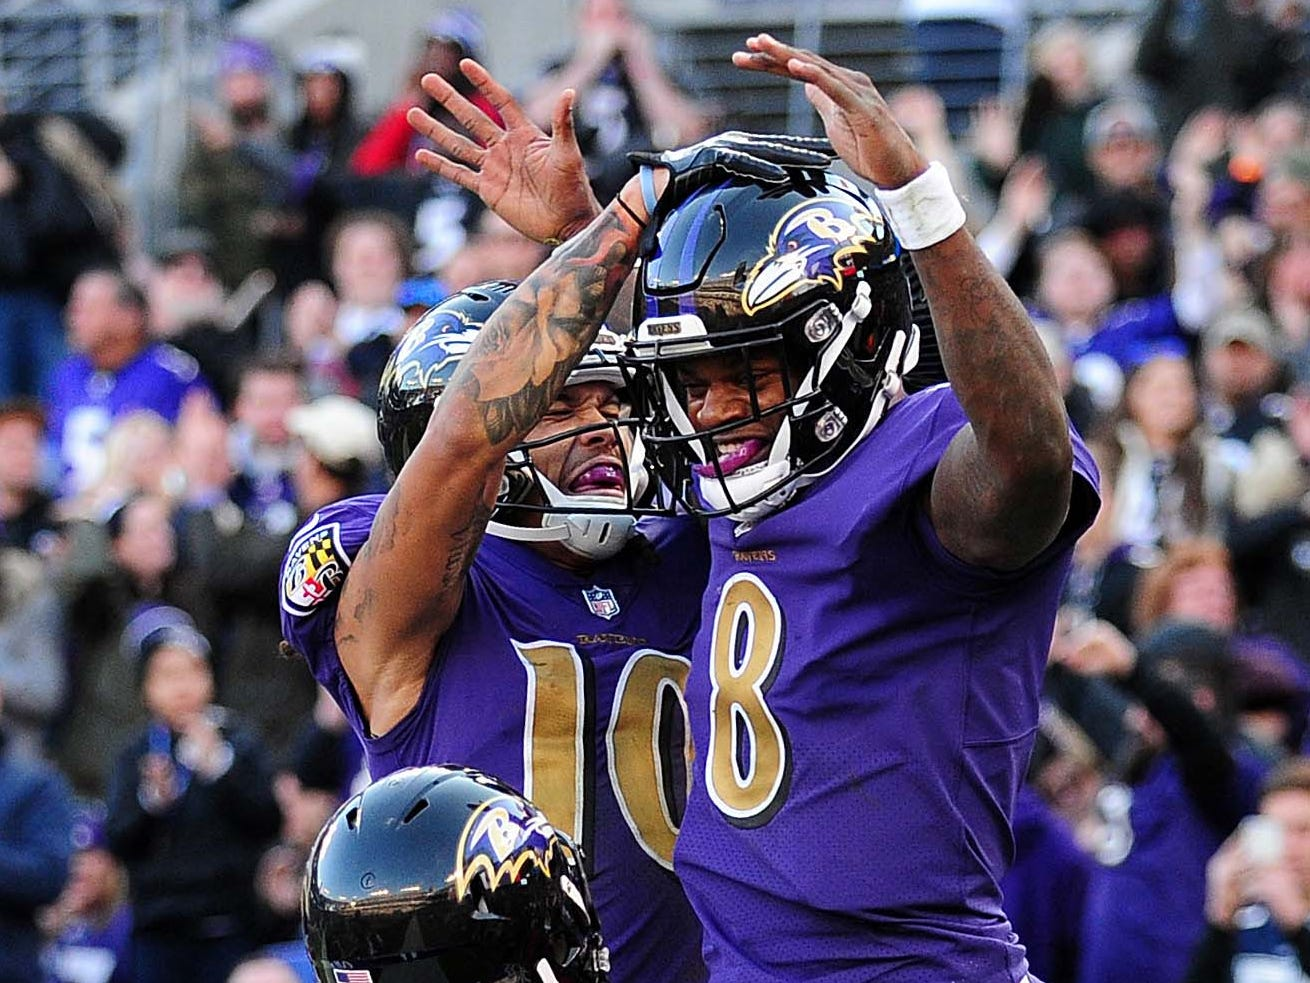 13. Ravens (14): Lamar Jackson has lifted them back into playoff picture, albeit against two of league's worst defenses. Now, is he ready for next level?